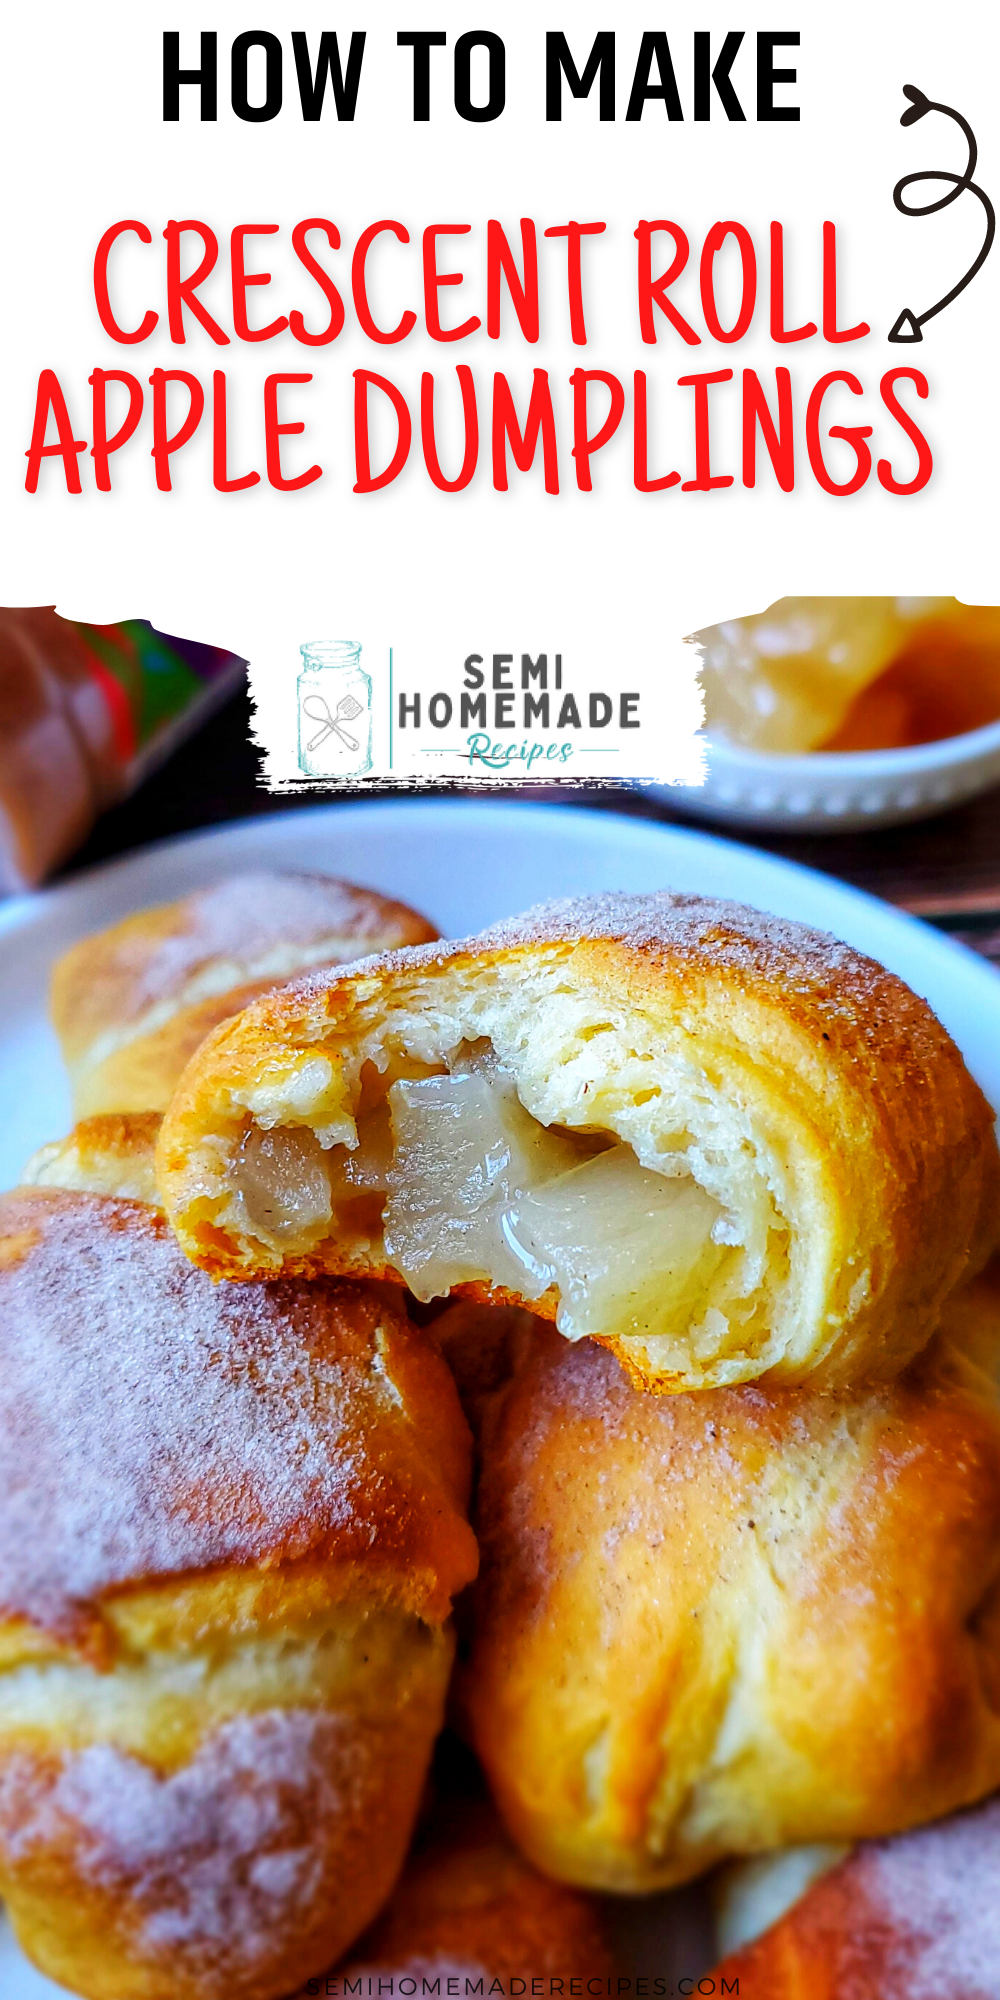 Crescent rolls, apple pie filling and cinnamon sugar comes together to make the sweetest little Crescent Roll Apple Dumplingsfor dessert!